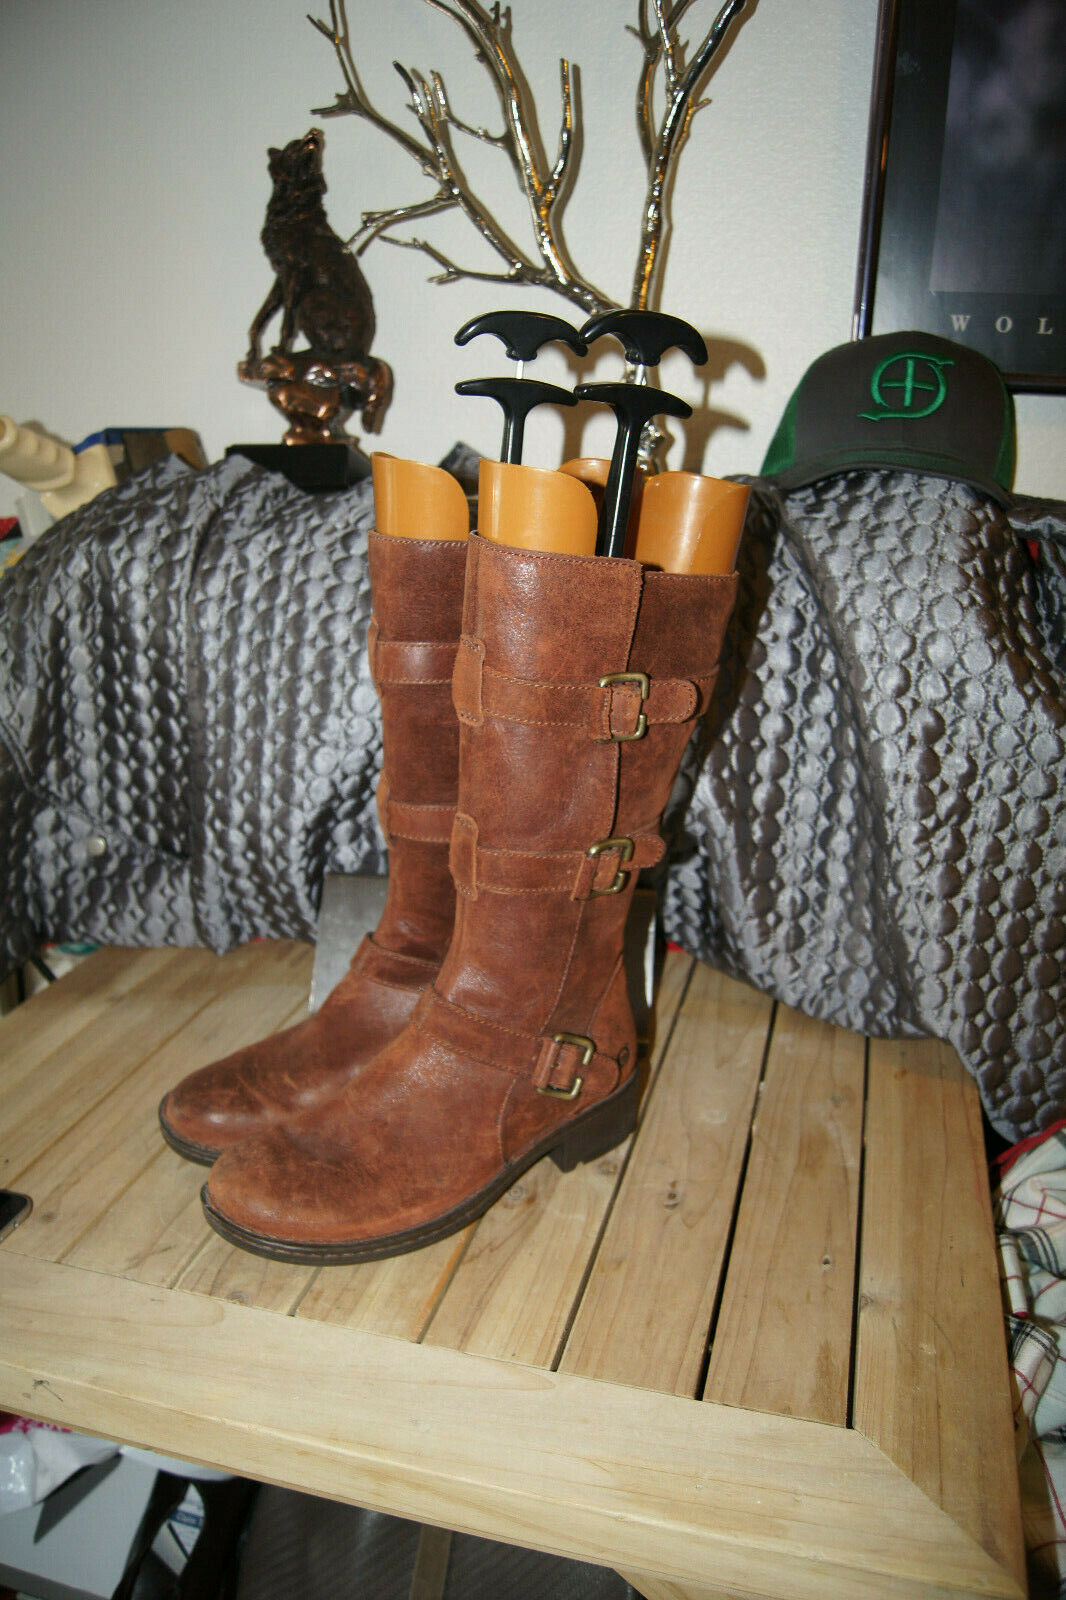 Women's Born Leather Boots Booties Size Size Size 8 born boots 8 LEATHER BOOTS 8 ac16dc